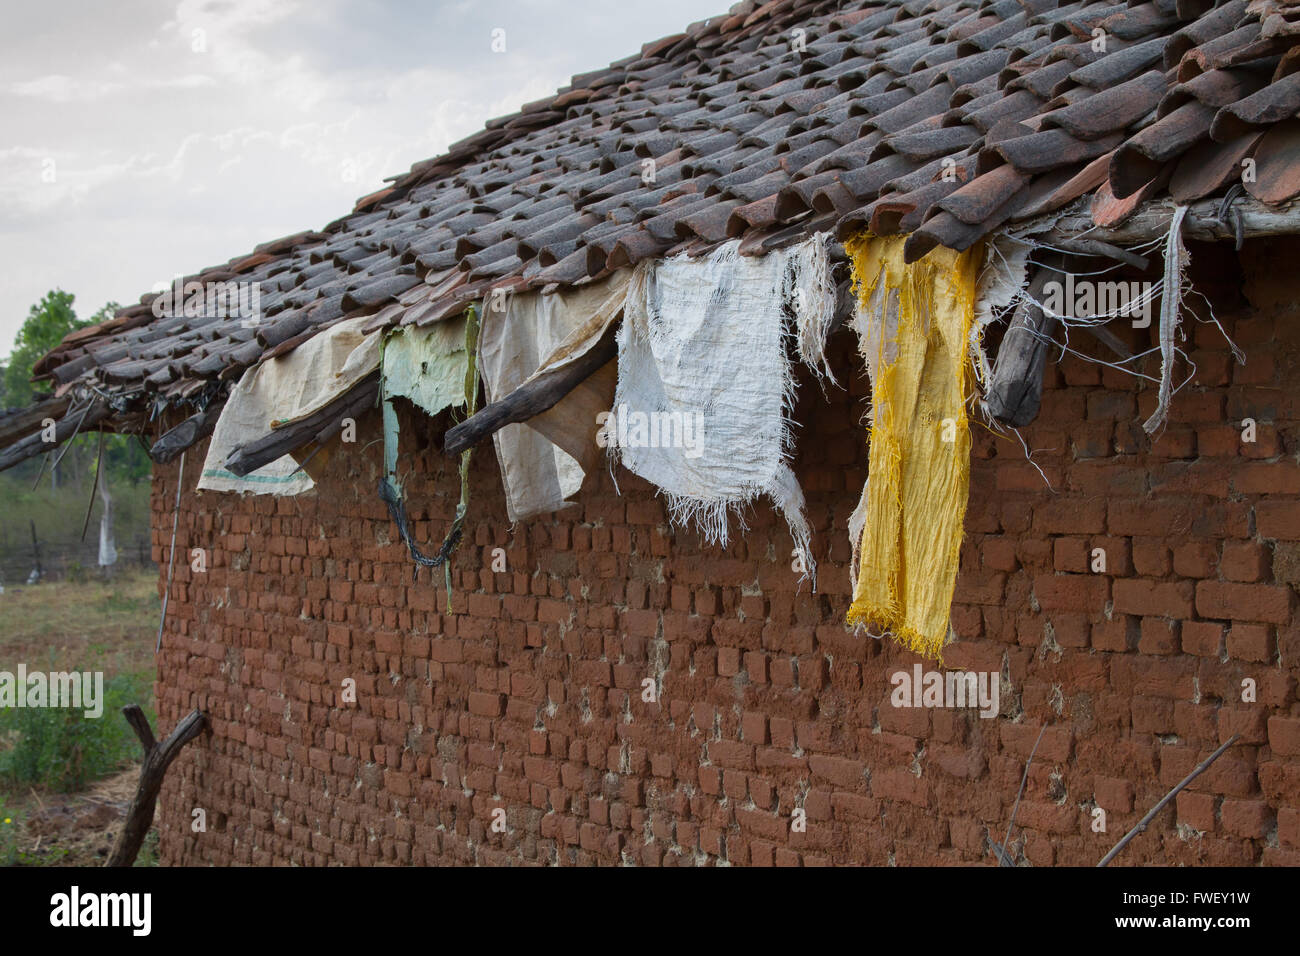 Cloth Roof Stock Photos Amp Cloth Roof Stock Images Page 2